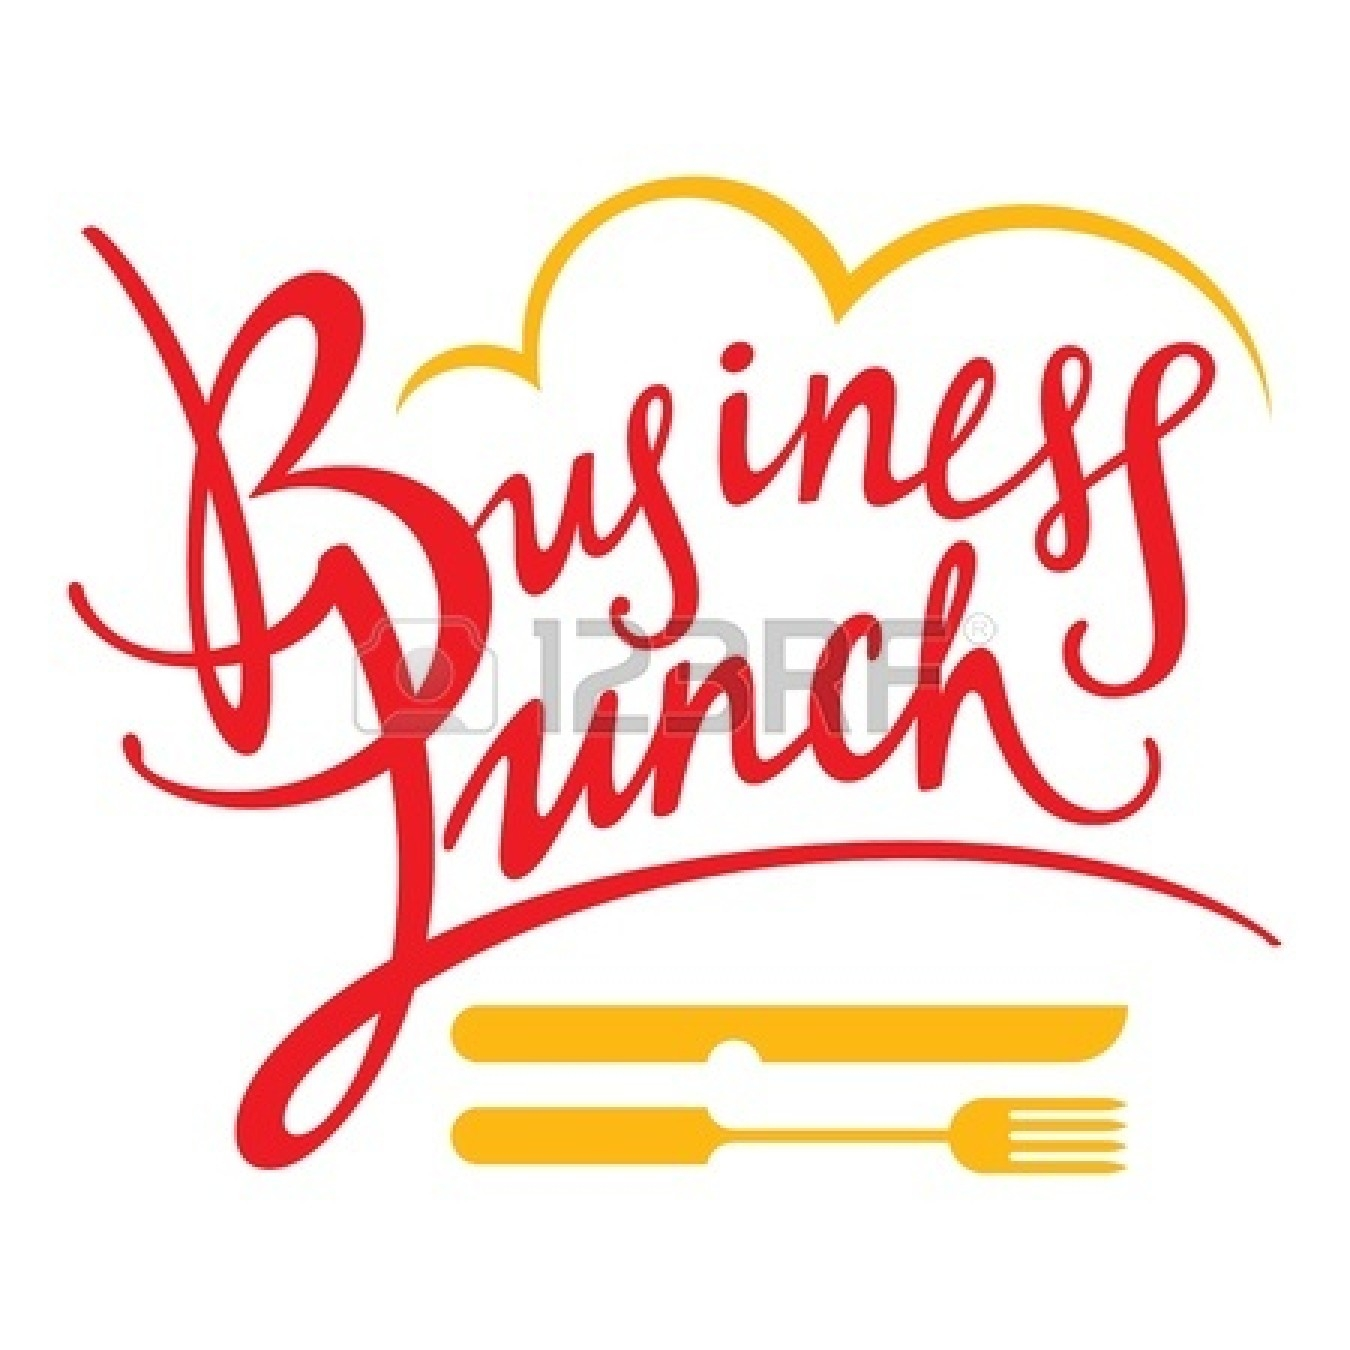 Business Lunch Clipart Free.